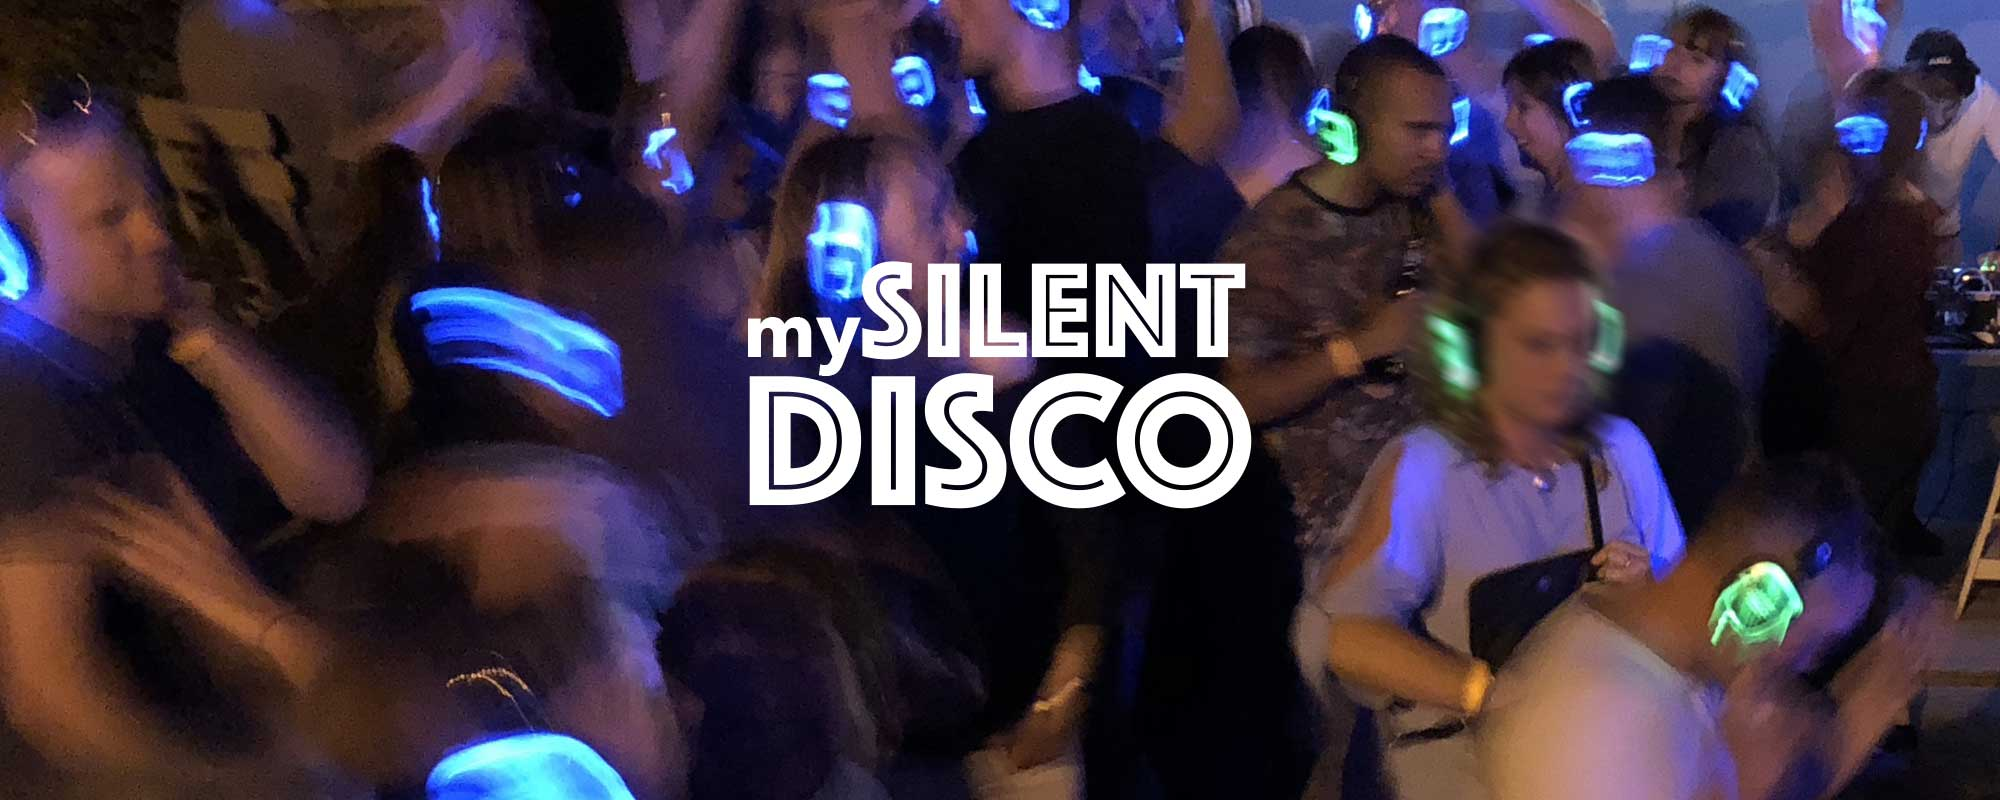 Indoor silent disco event